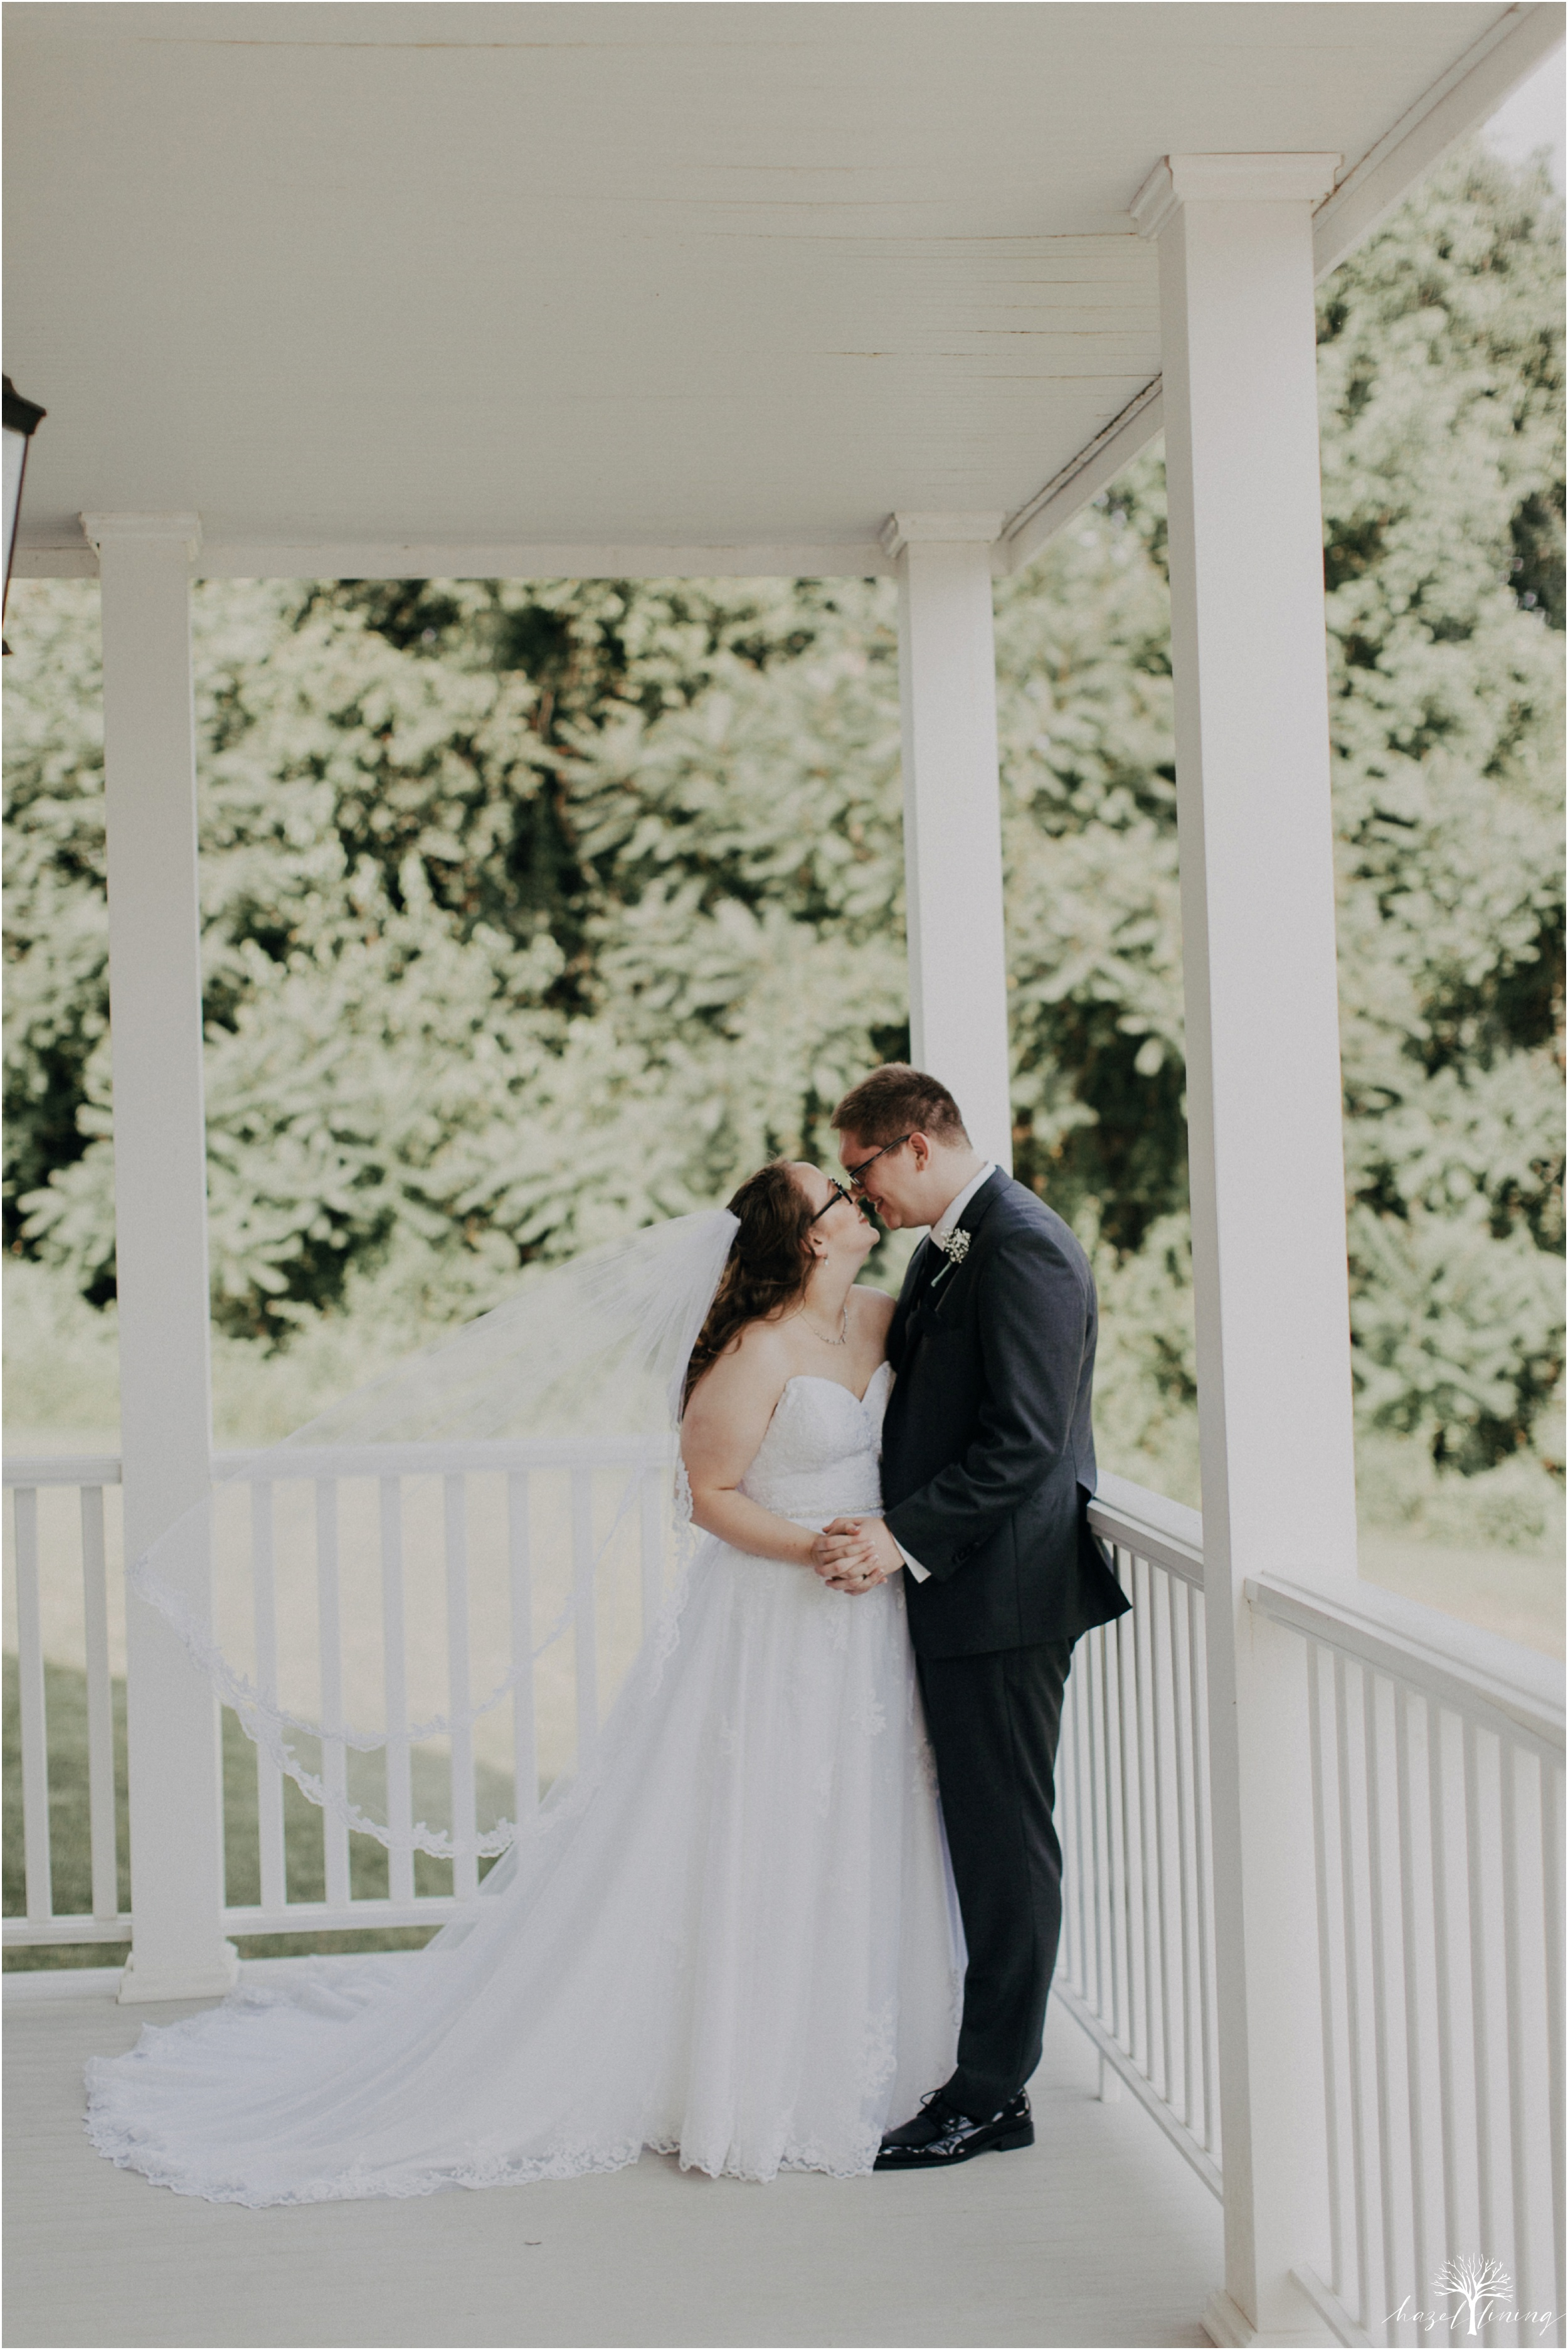 laura-zach-mccaskill-harmony-hall-lebanon-valley-college-summer-wedding-hazel-lining-photography-destination-elopement-wedding-engagement-photography_0095.jpg